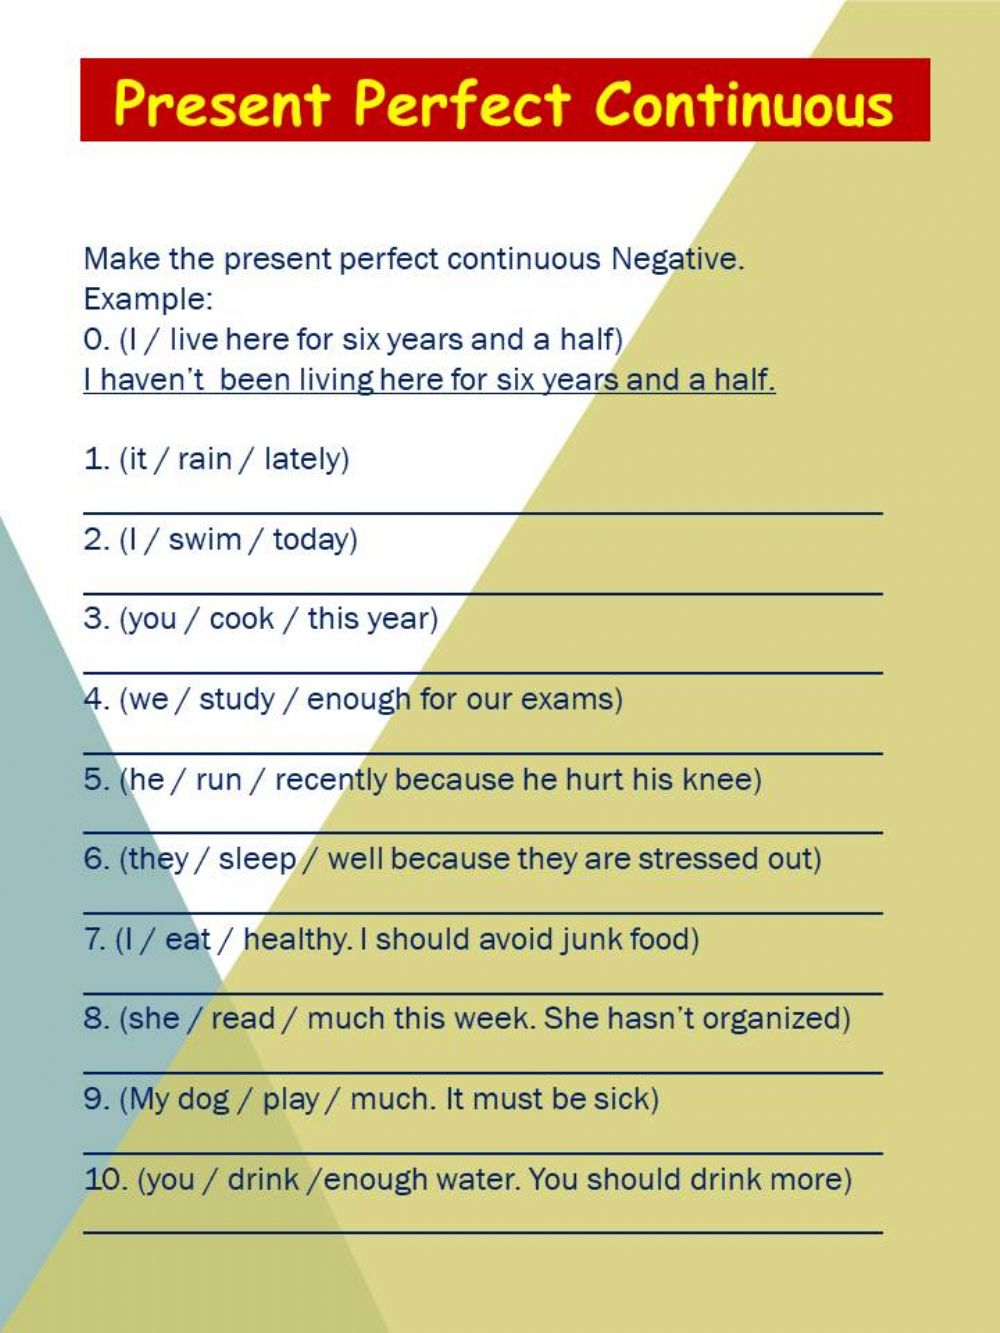 Present Perfect Continuous Interactive Worksheets